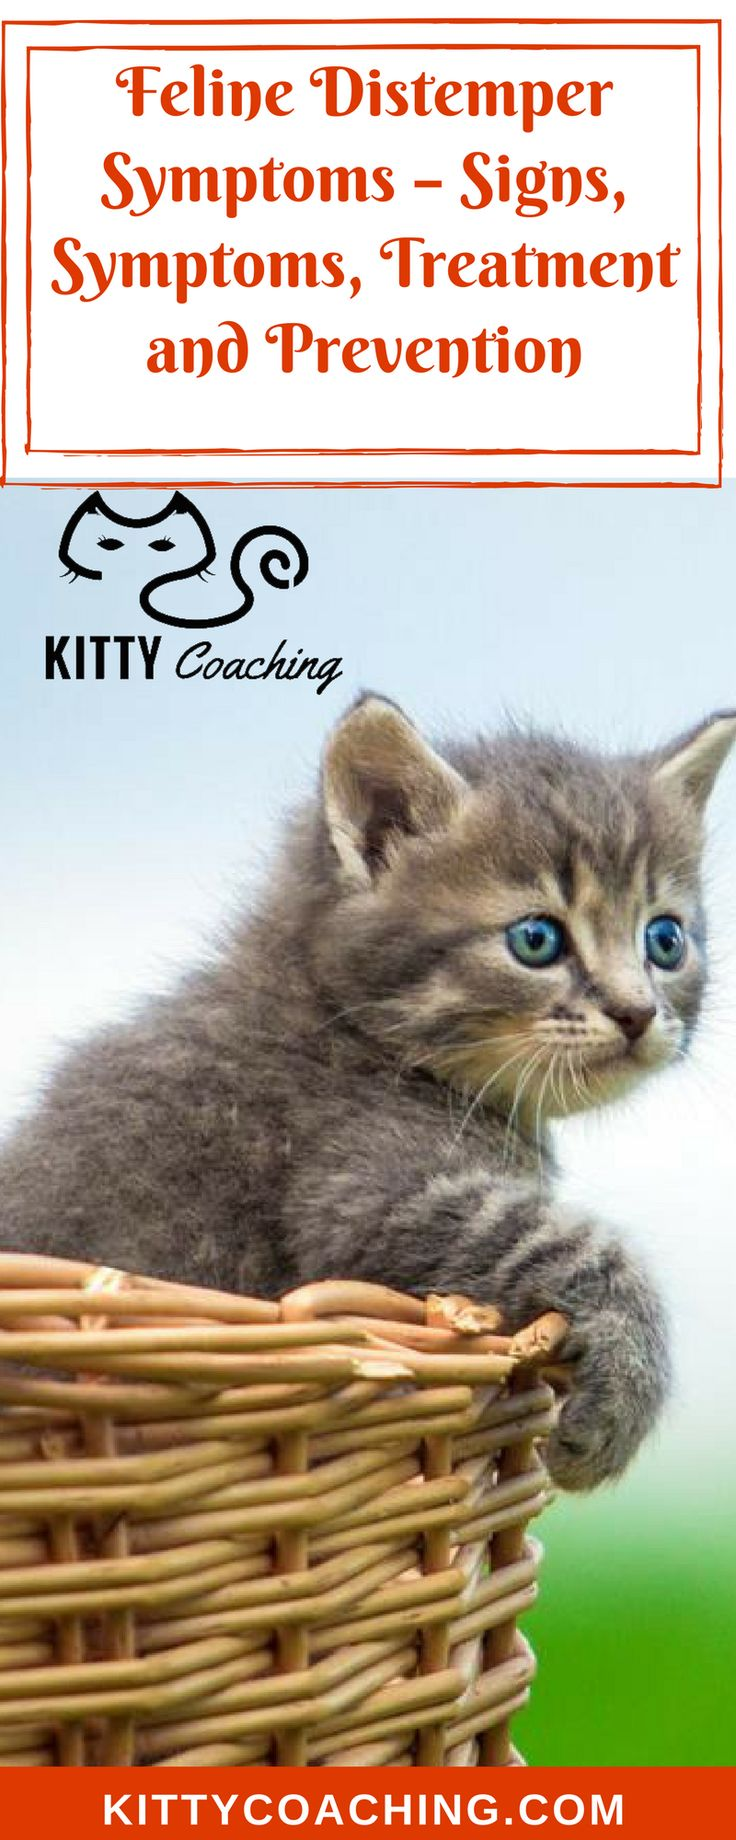 Feline Distemper Symptoms – Signs, Symptoms, Treatment and Prevention: http://www.kittycoaching.com/health/feline-distemper-symptoms/